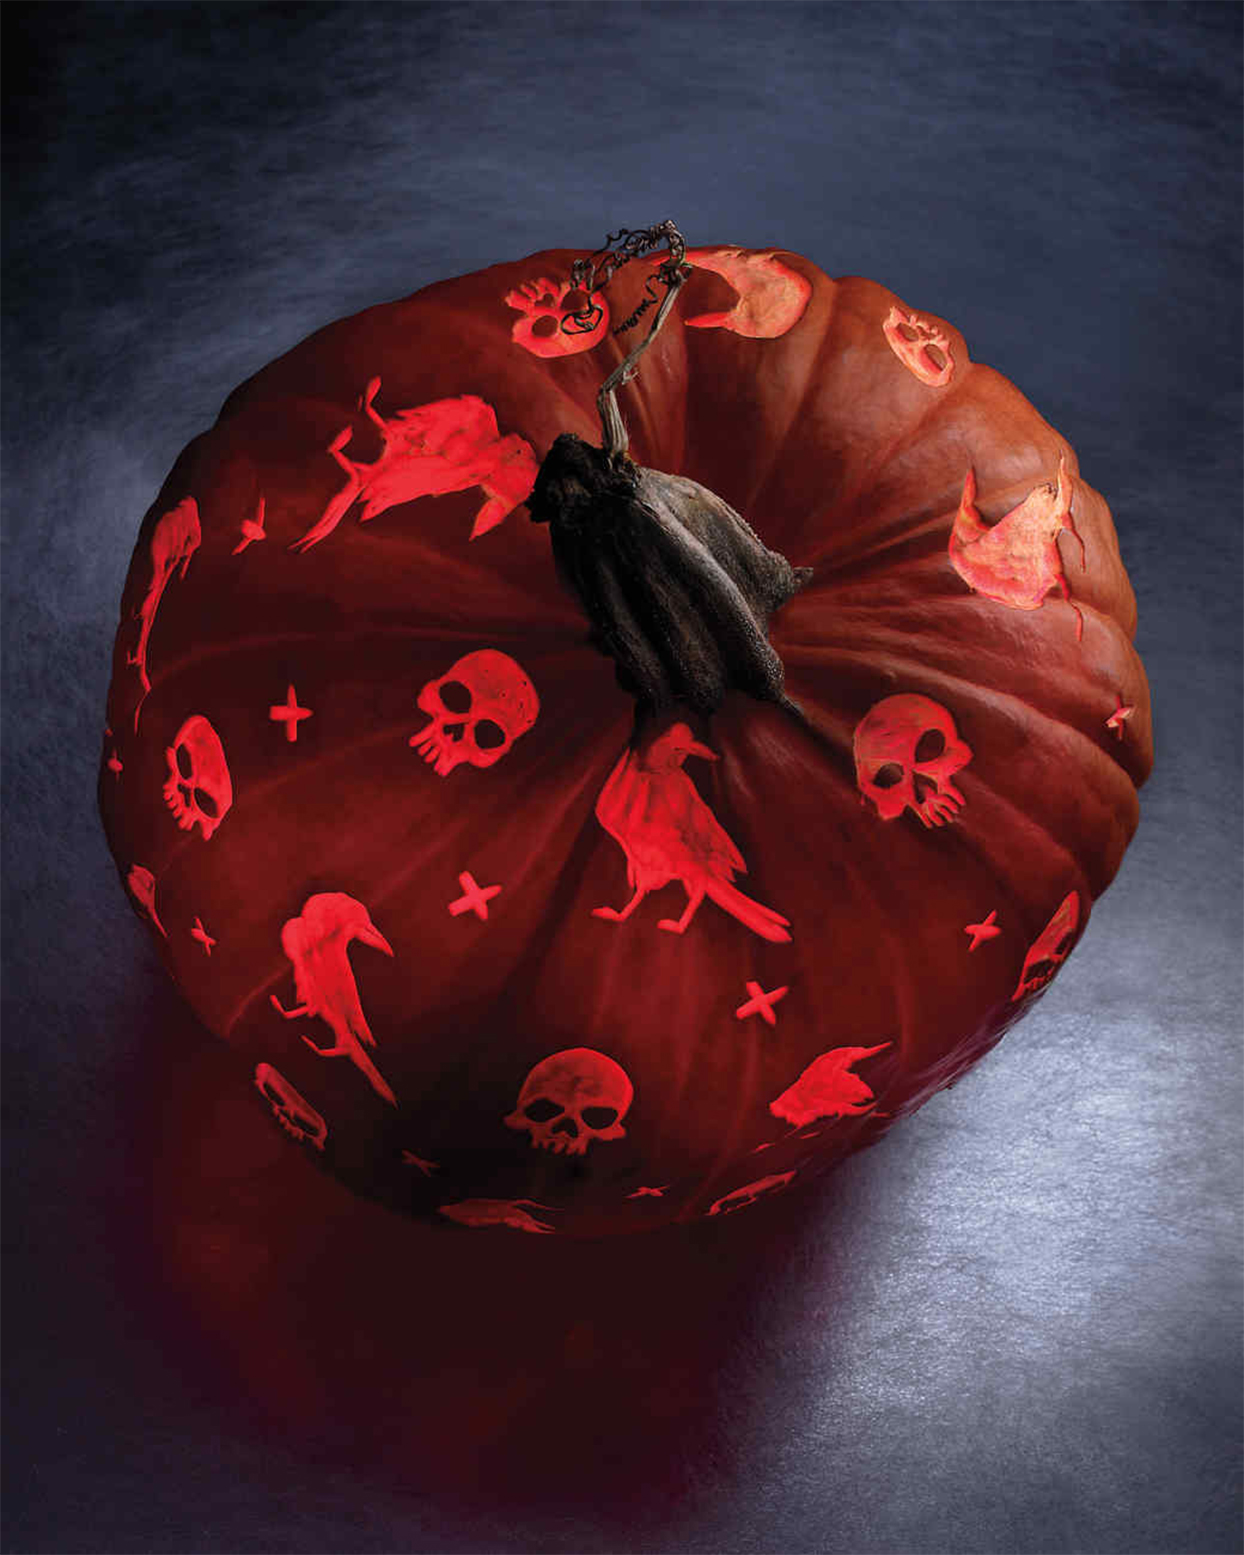 skull and raven checkerboard patterned pumpkin